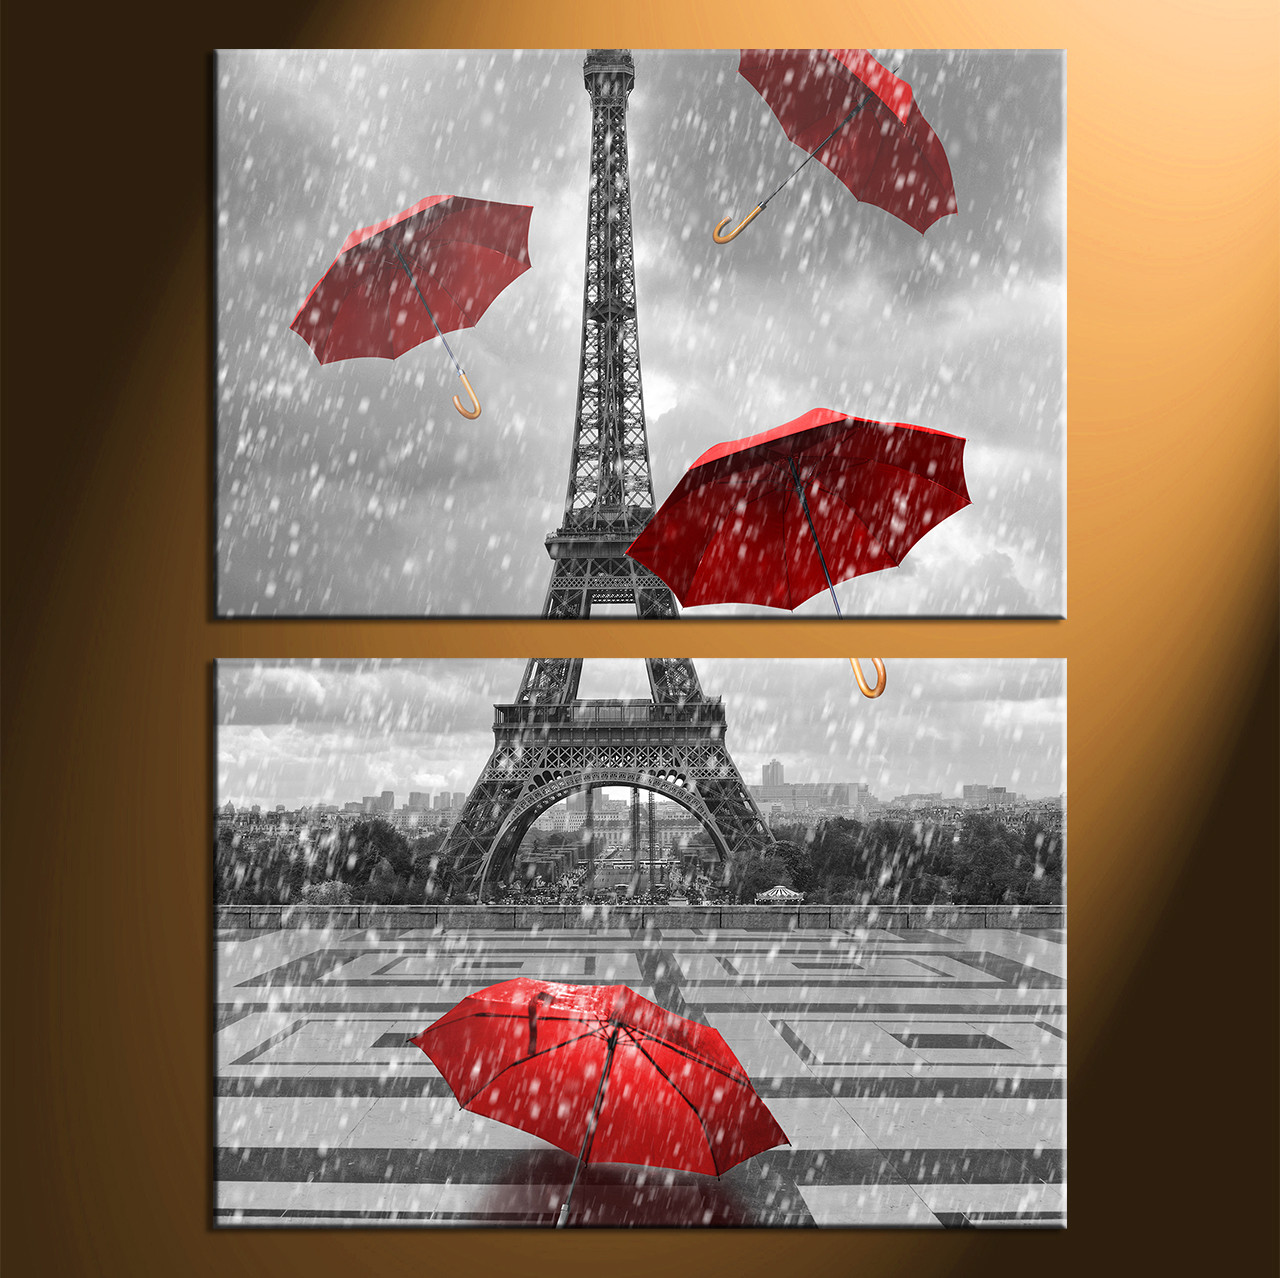 Home Decor, 2 Piece Wall Art, Umbrella Panel Art, Eiffel Tower Art,